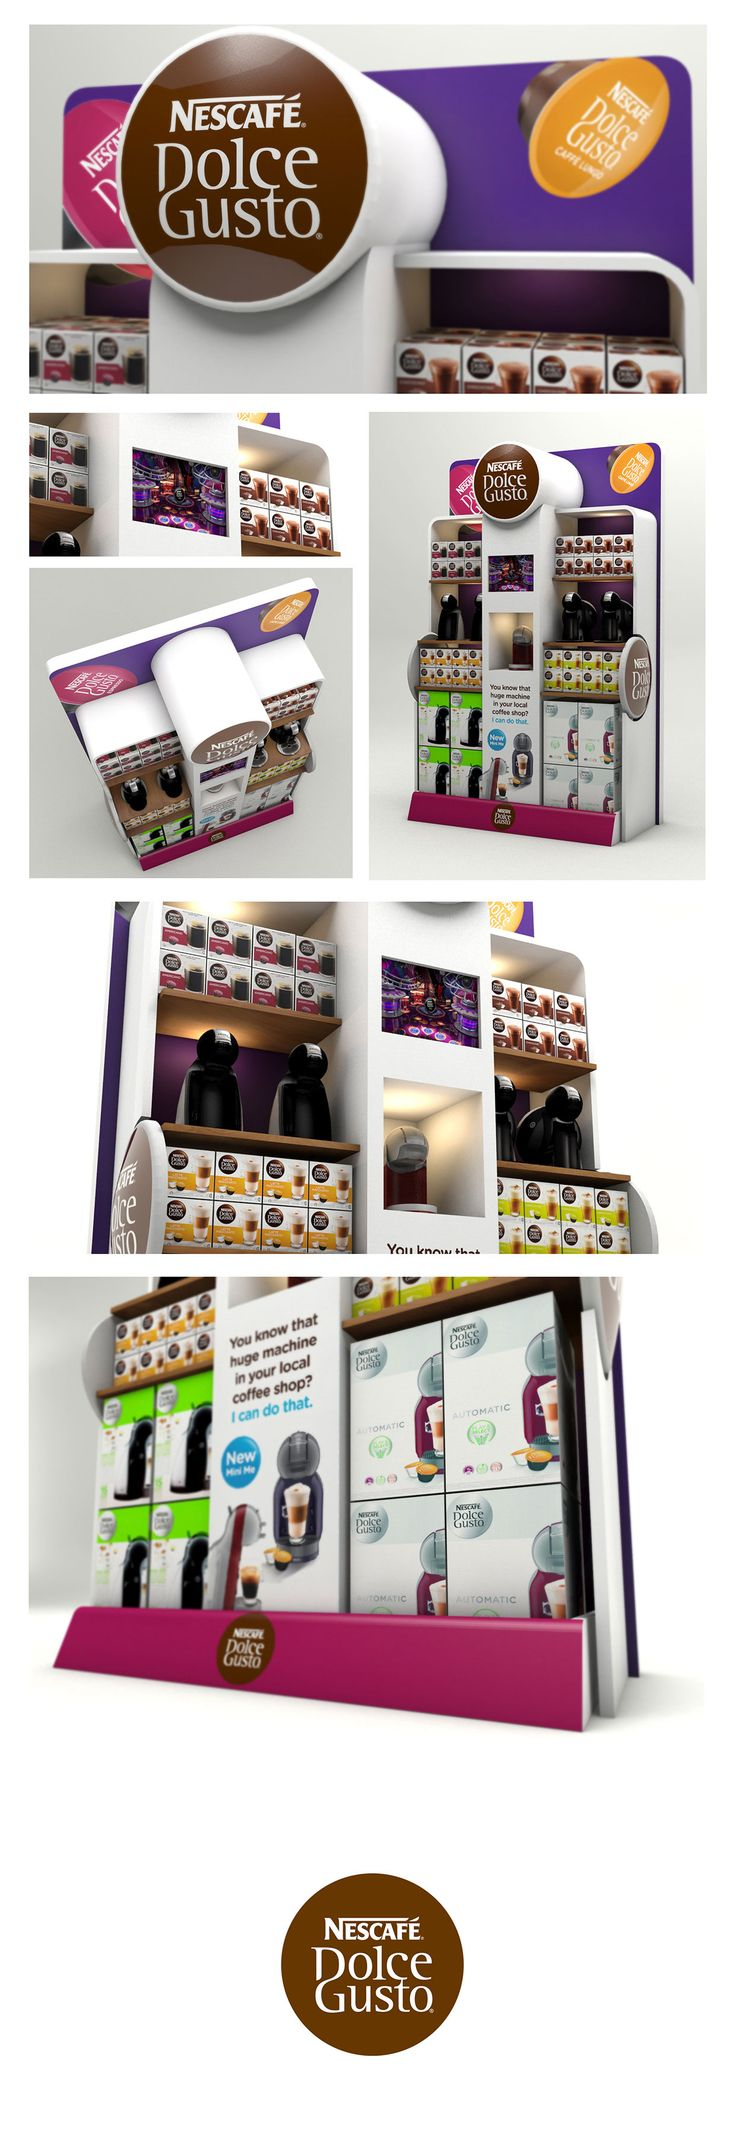 Posm design sofy posm design - Dolce Gusto Retail Display By Neil Colley